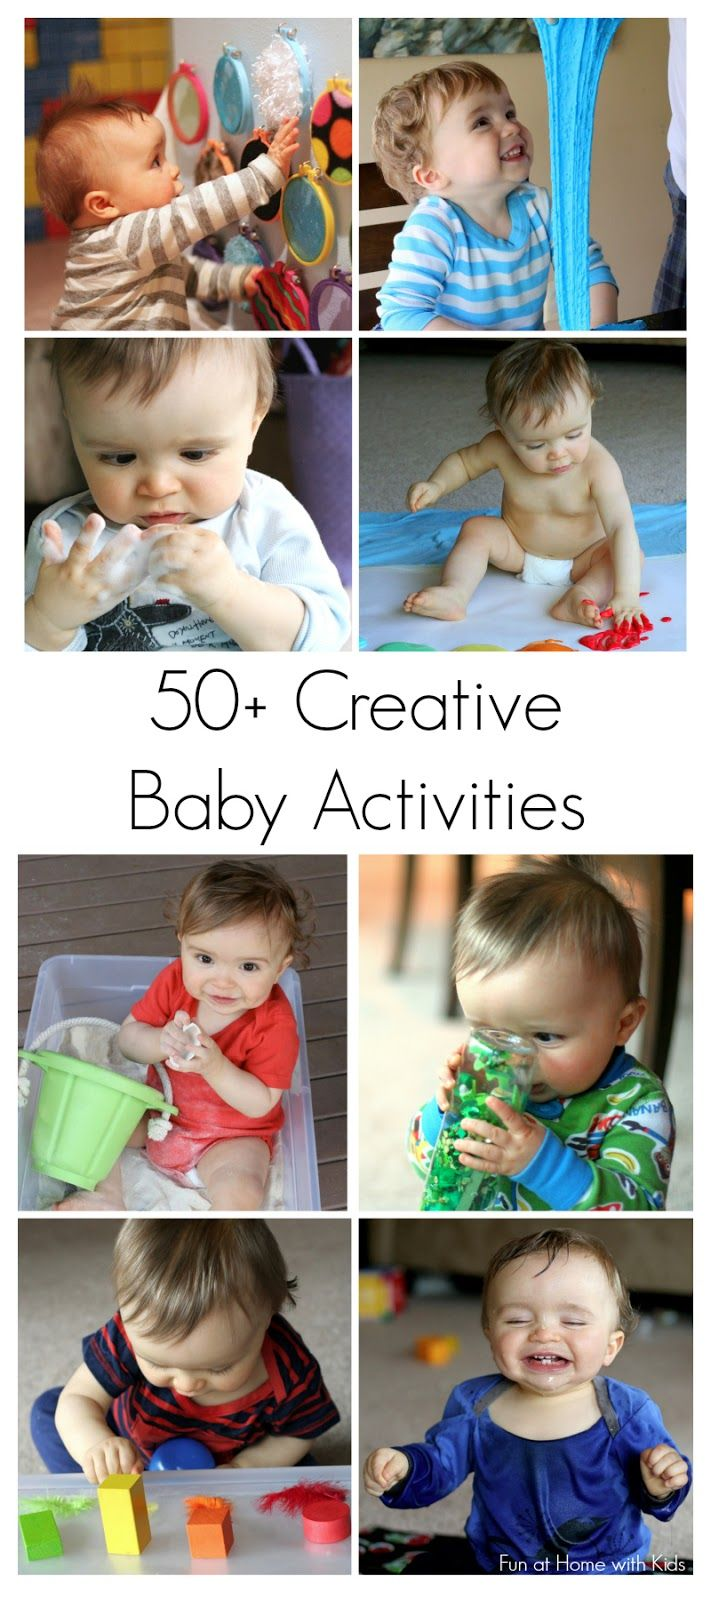 Creative Fun For All Ages With Easy Diy Wall Art Projects: 50+ Creative Activities For Babies